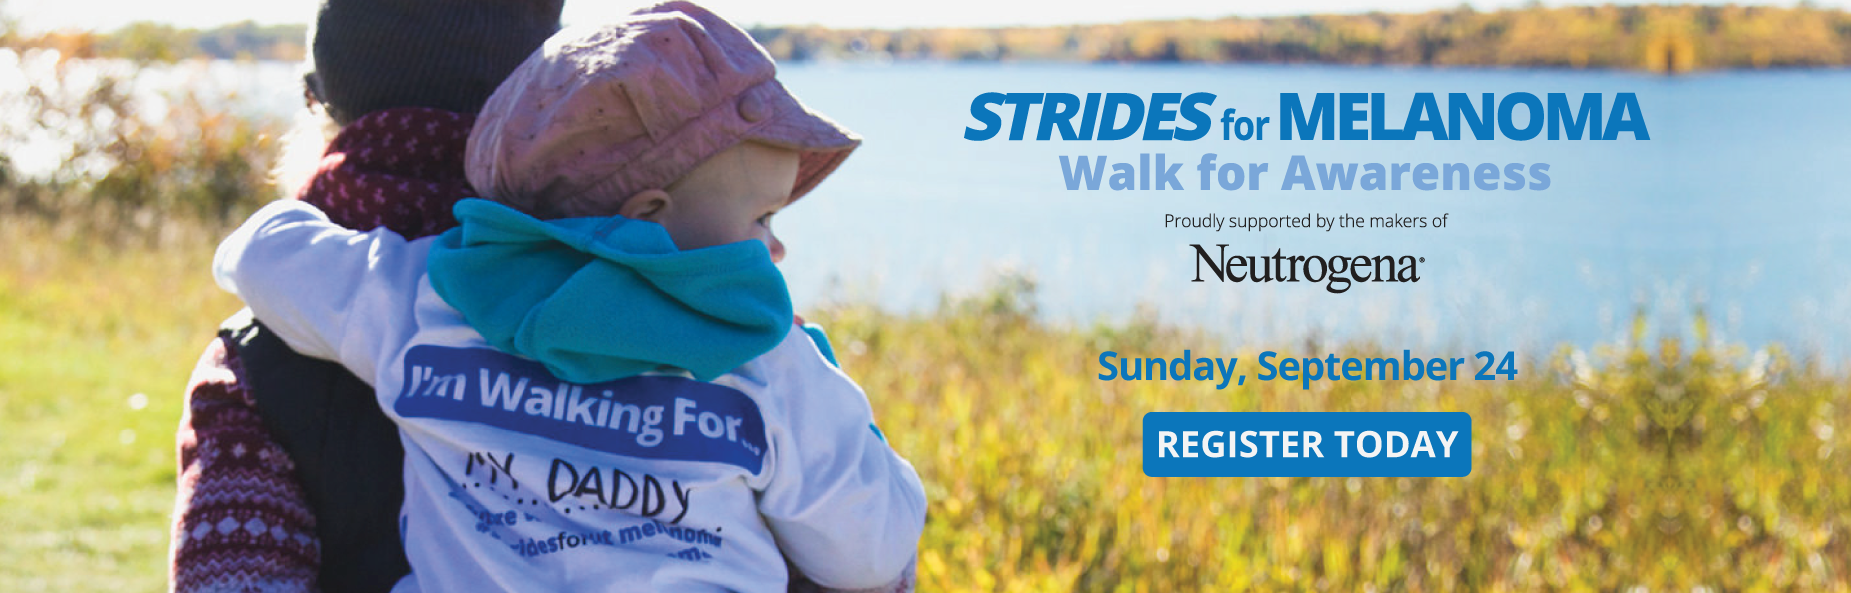 Register Today for Strides for Melanoma Walk for Awareness